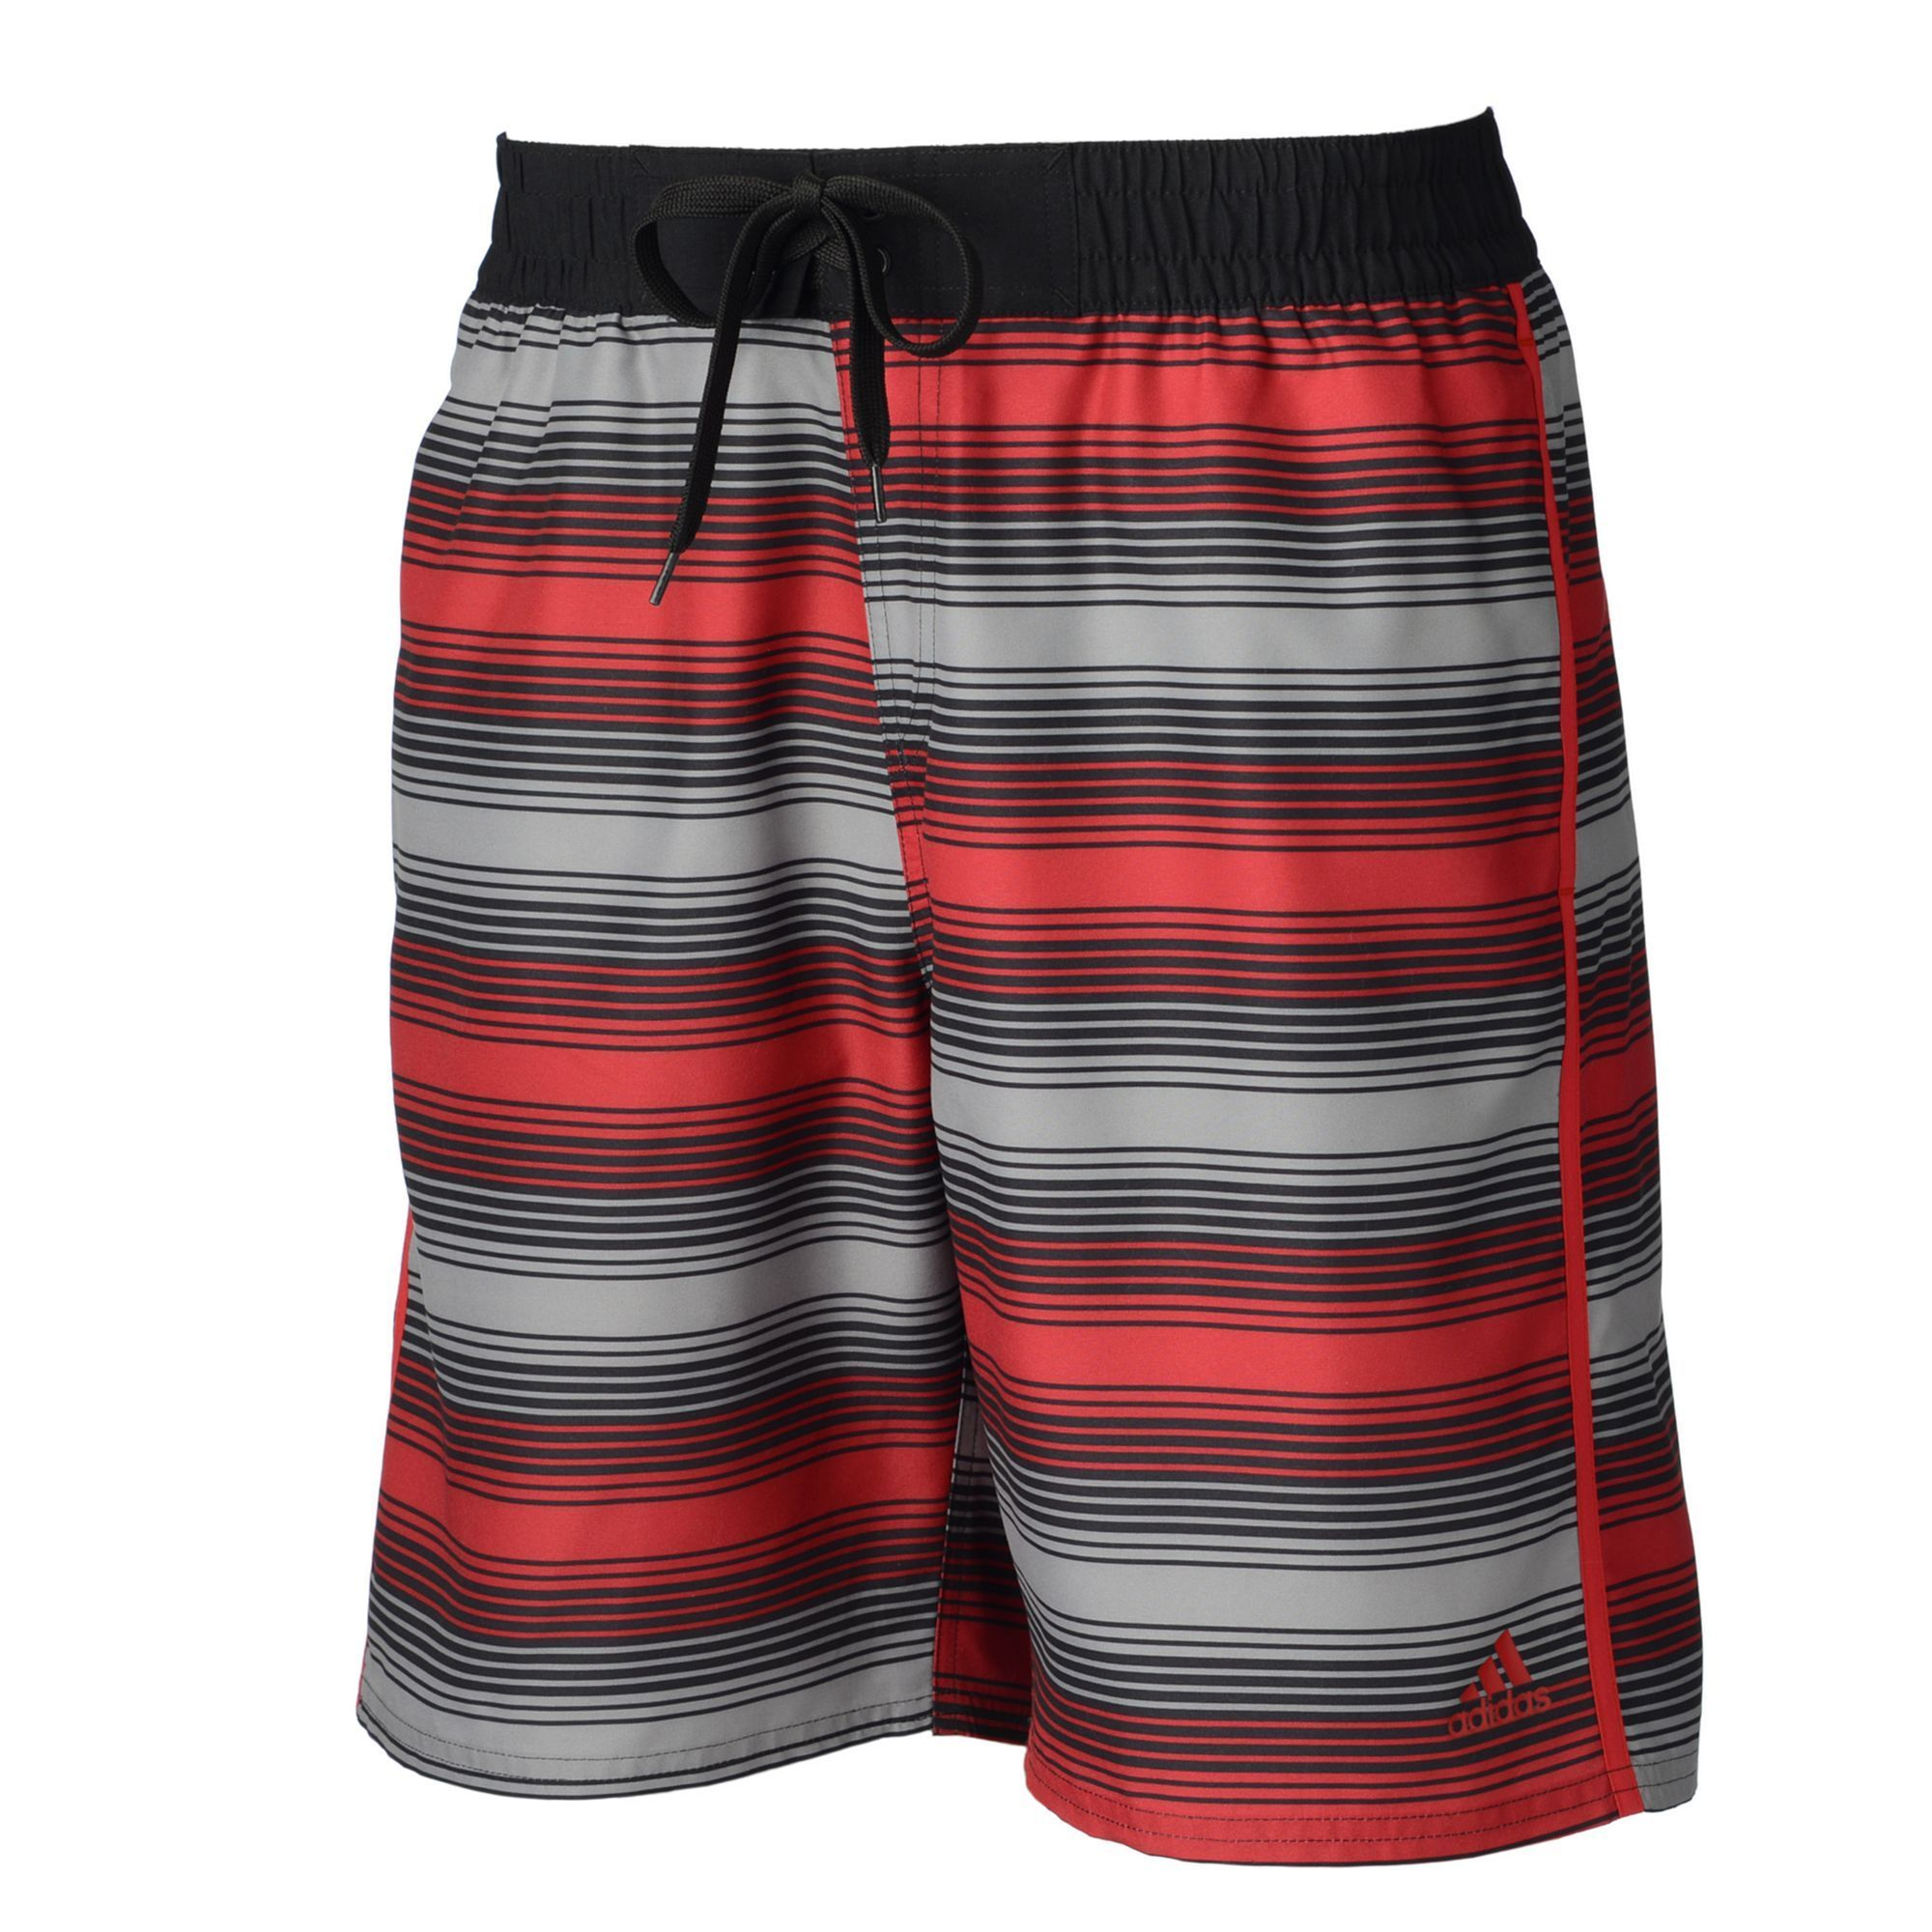 Men's Adidas Energy Striped Microfiber Volley Swim Trunks, Size: Medium, Red